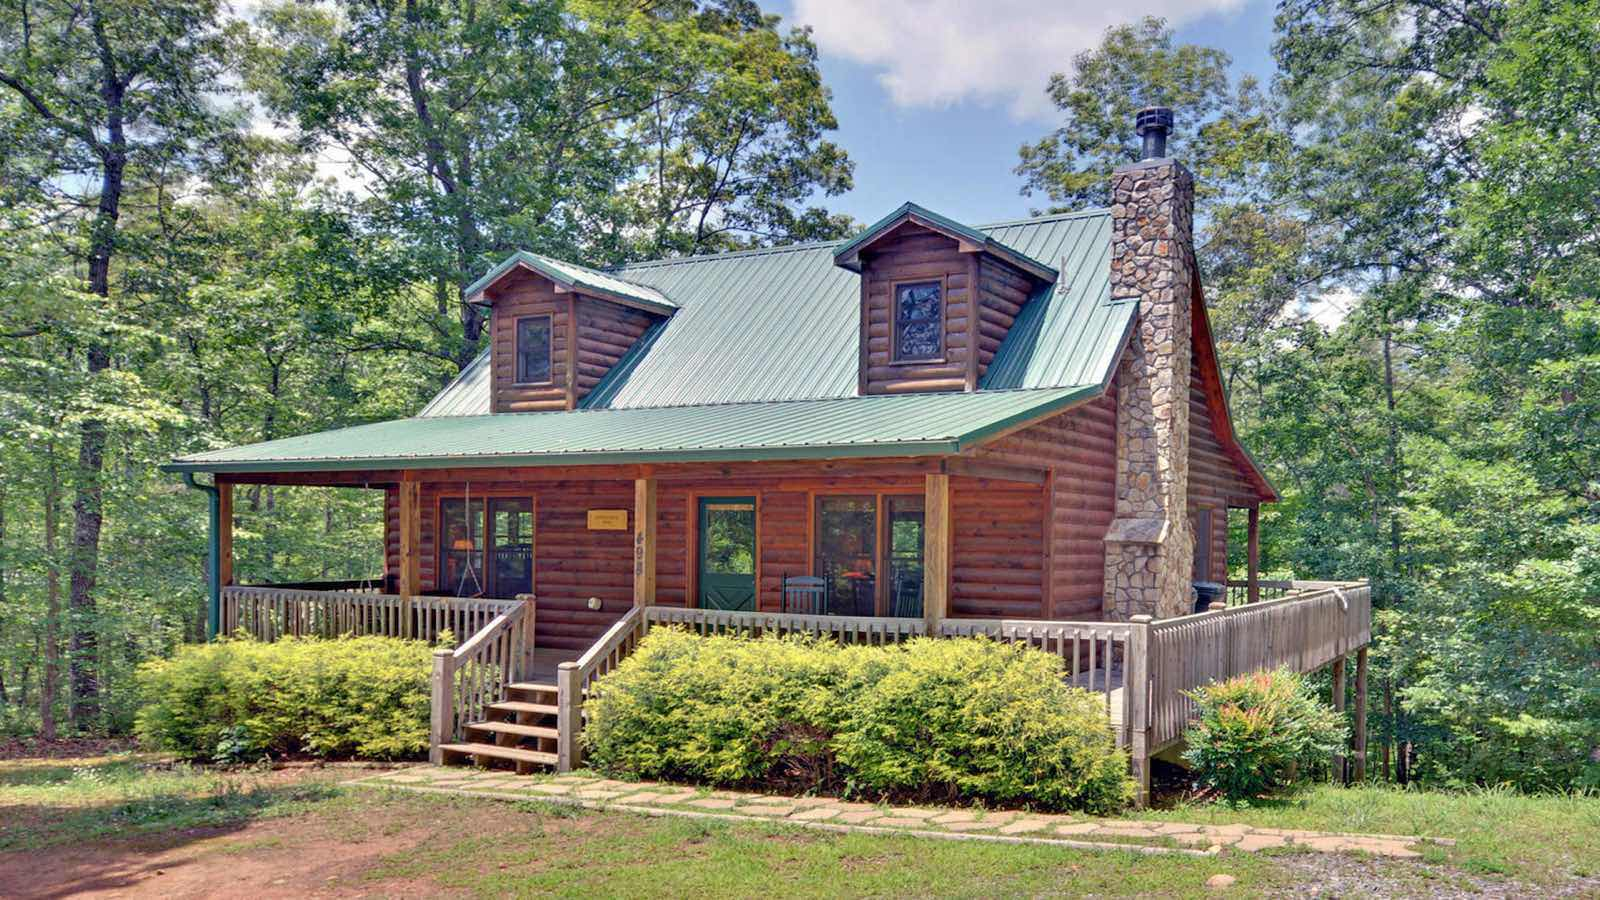 Secluded cabin rentals in georgia mountains for Rent a cabin in georgia mountains